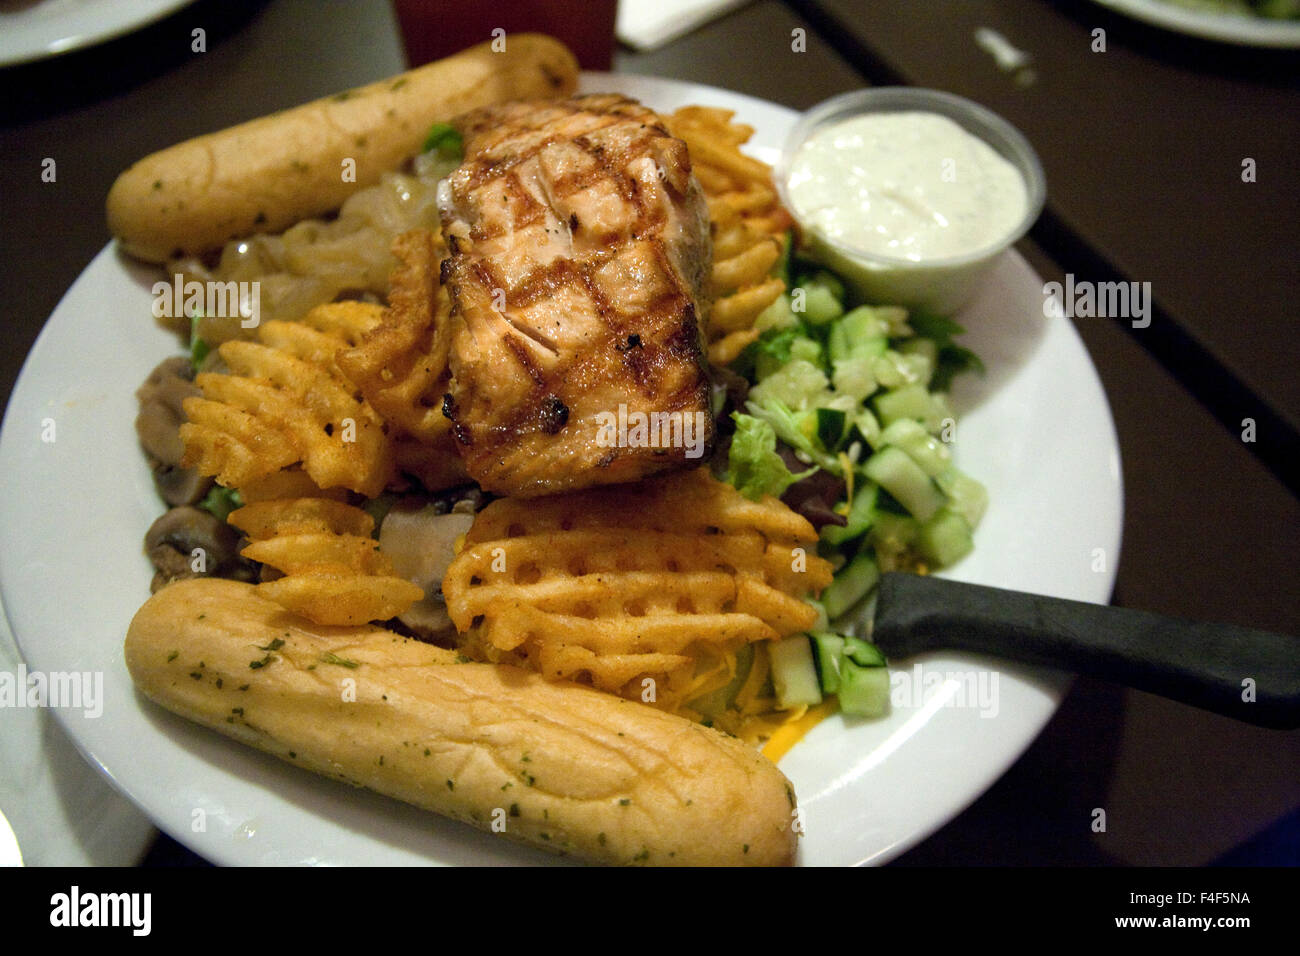 Popular Grilled Salmon Menu Selection With Pitt Style French Fries